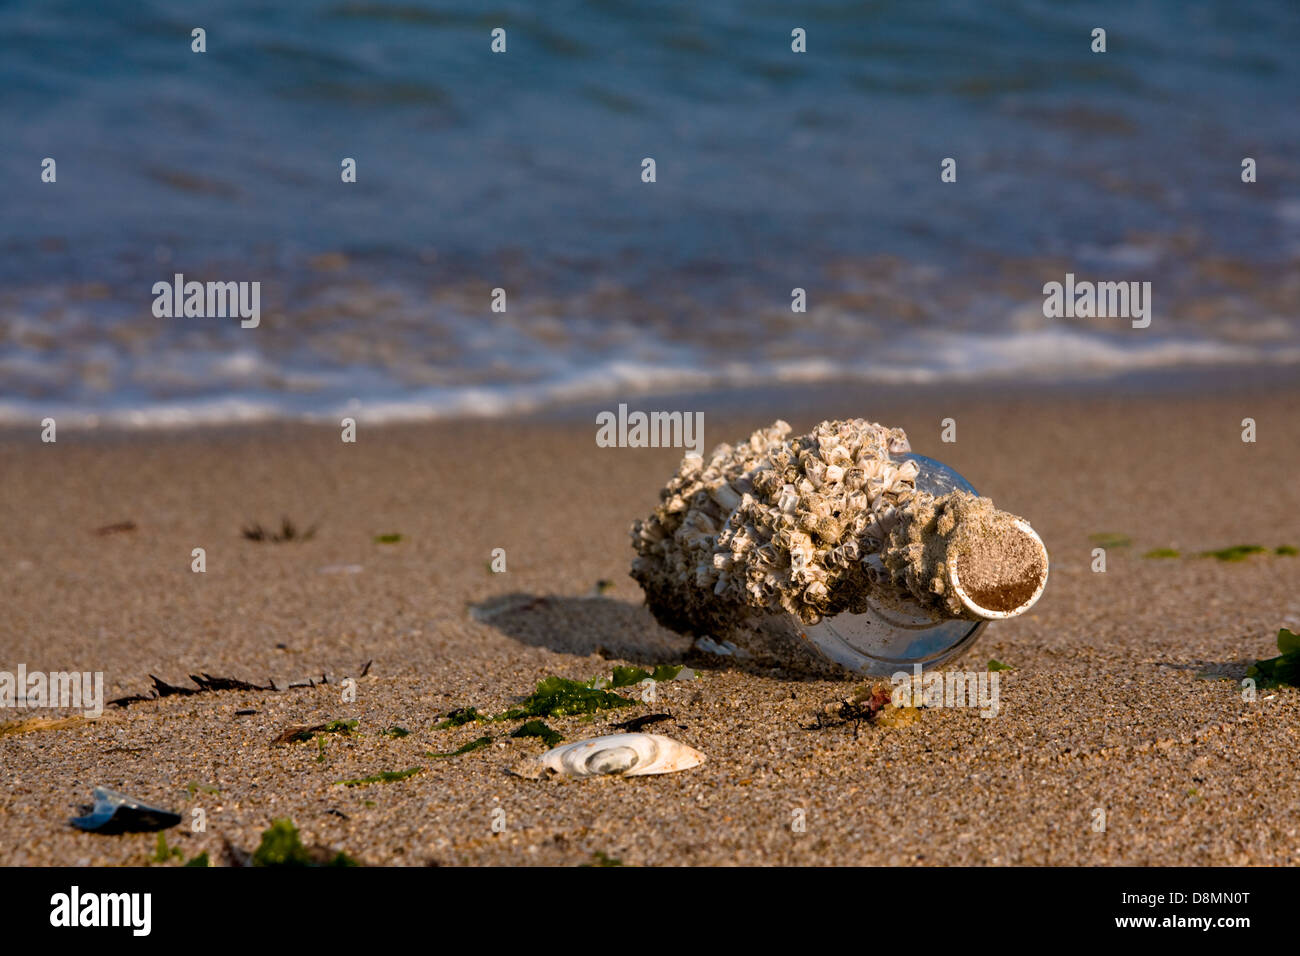 Old bottle at the beach. Survivor message. - Stock Image